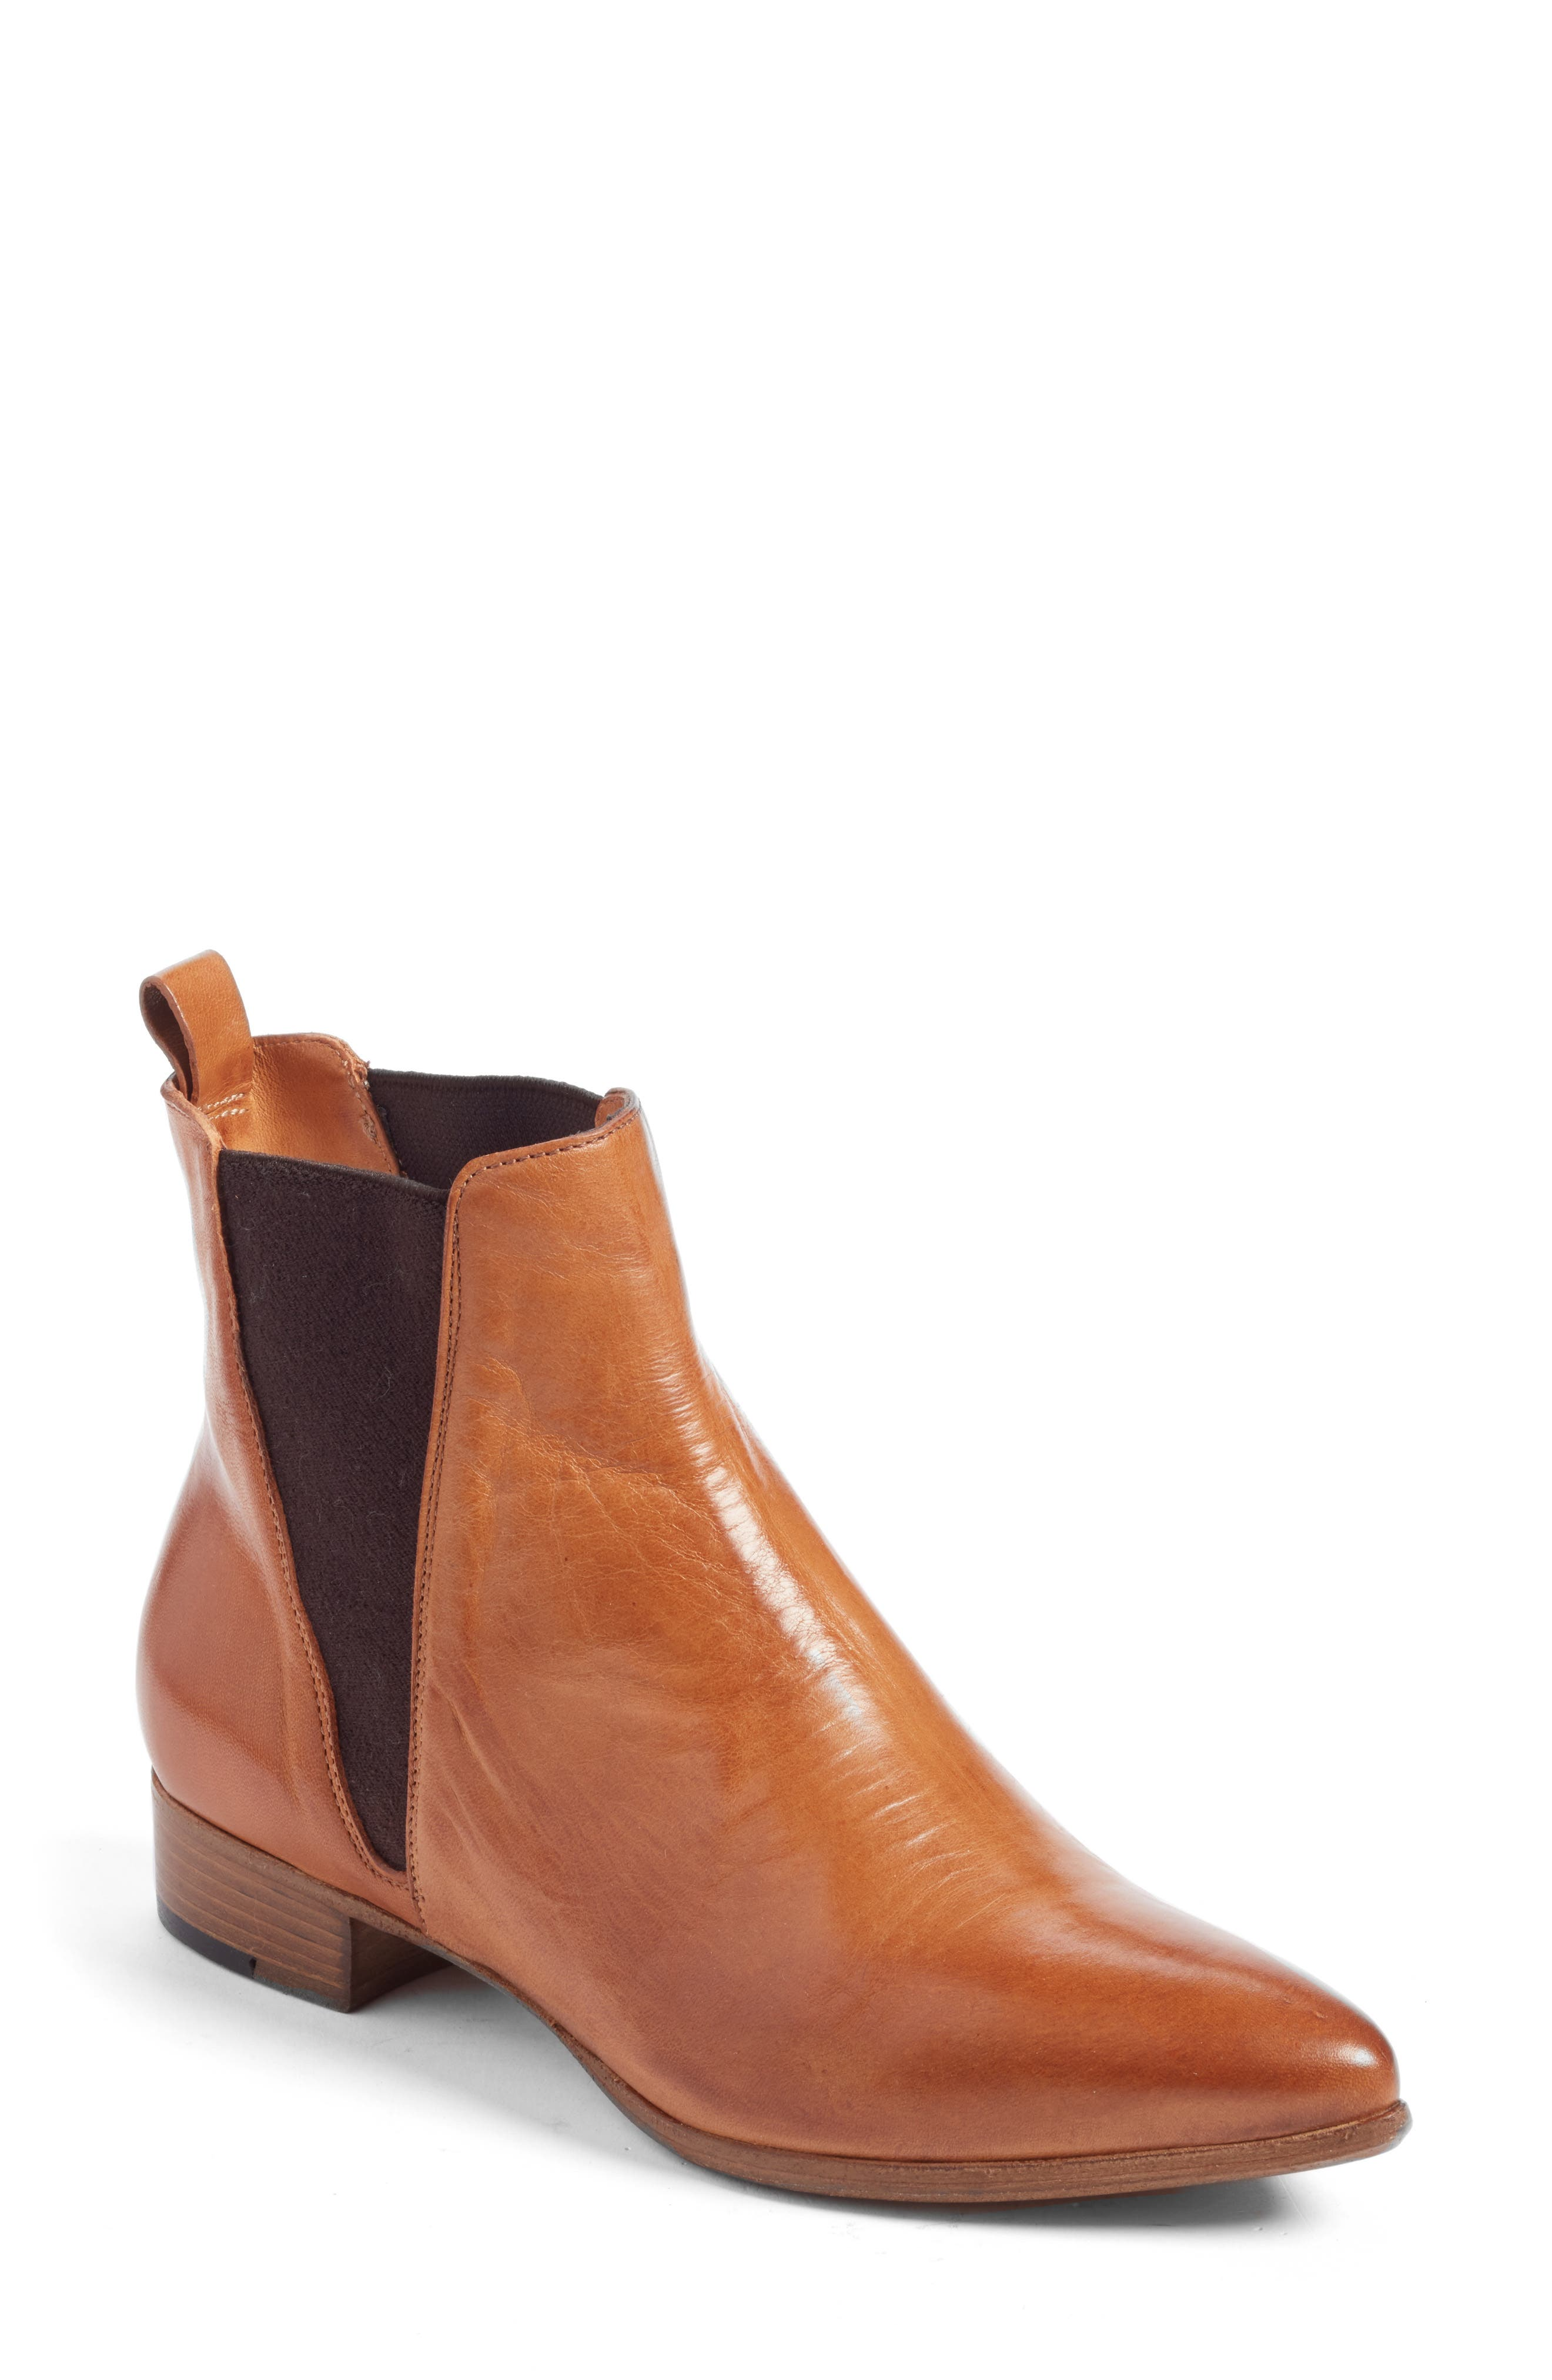 Brenna Chelsea Bootie,                             Main thumbnail 1, color,                             200